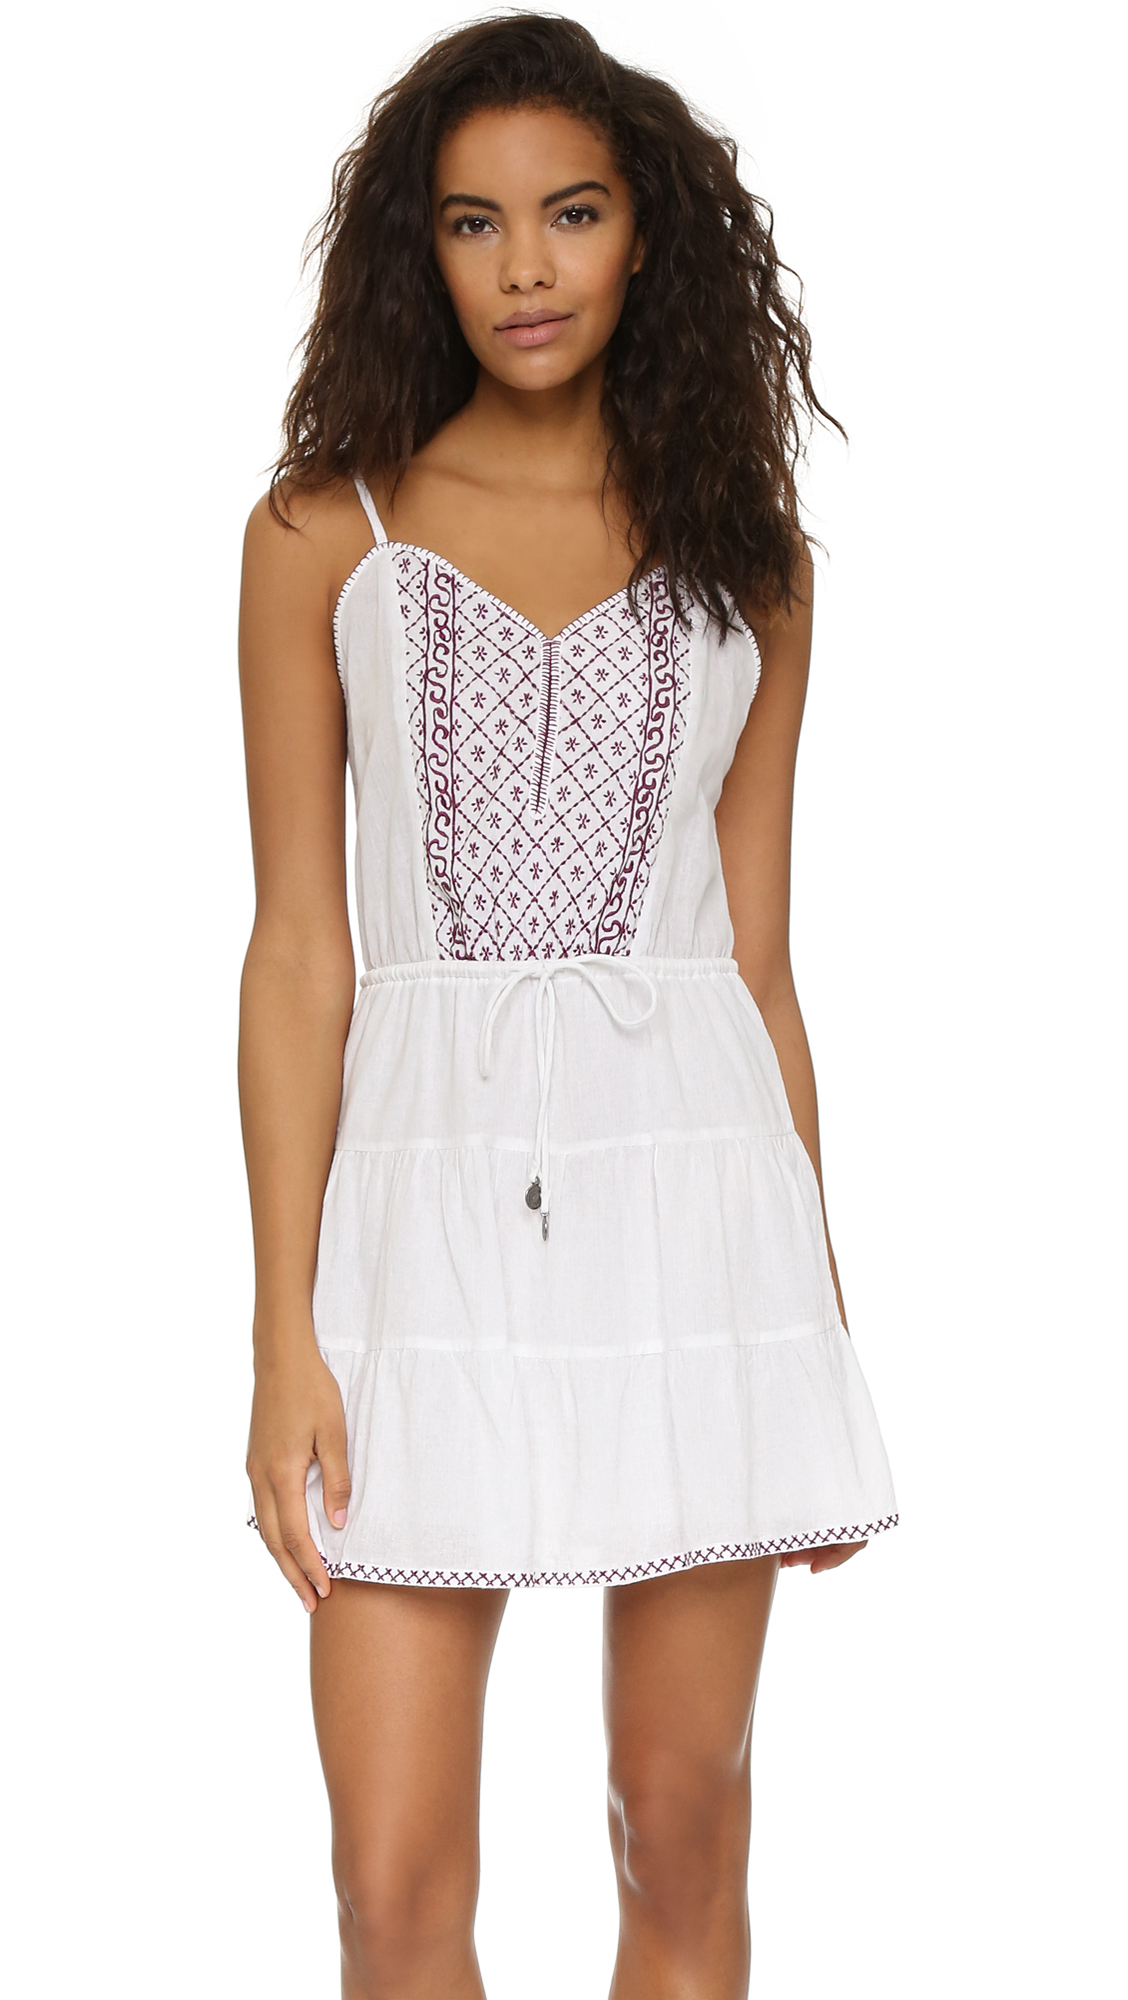 10 Perfect White Vacation Dresses - Tigerlily Lovech Dress